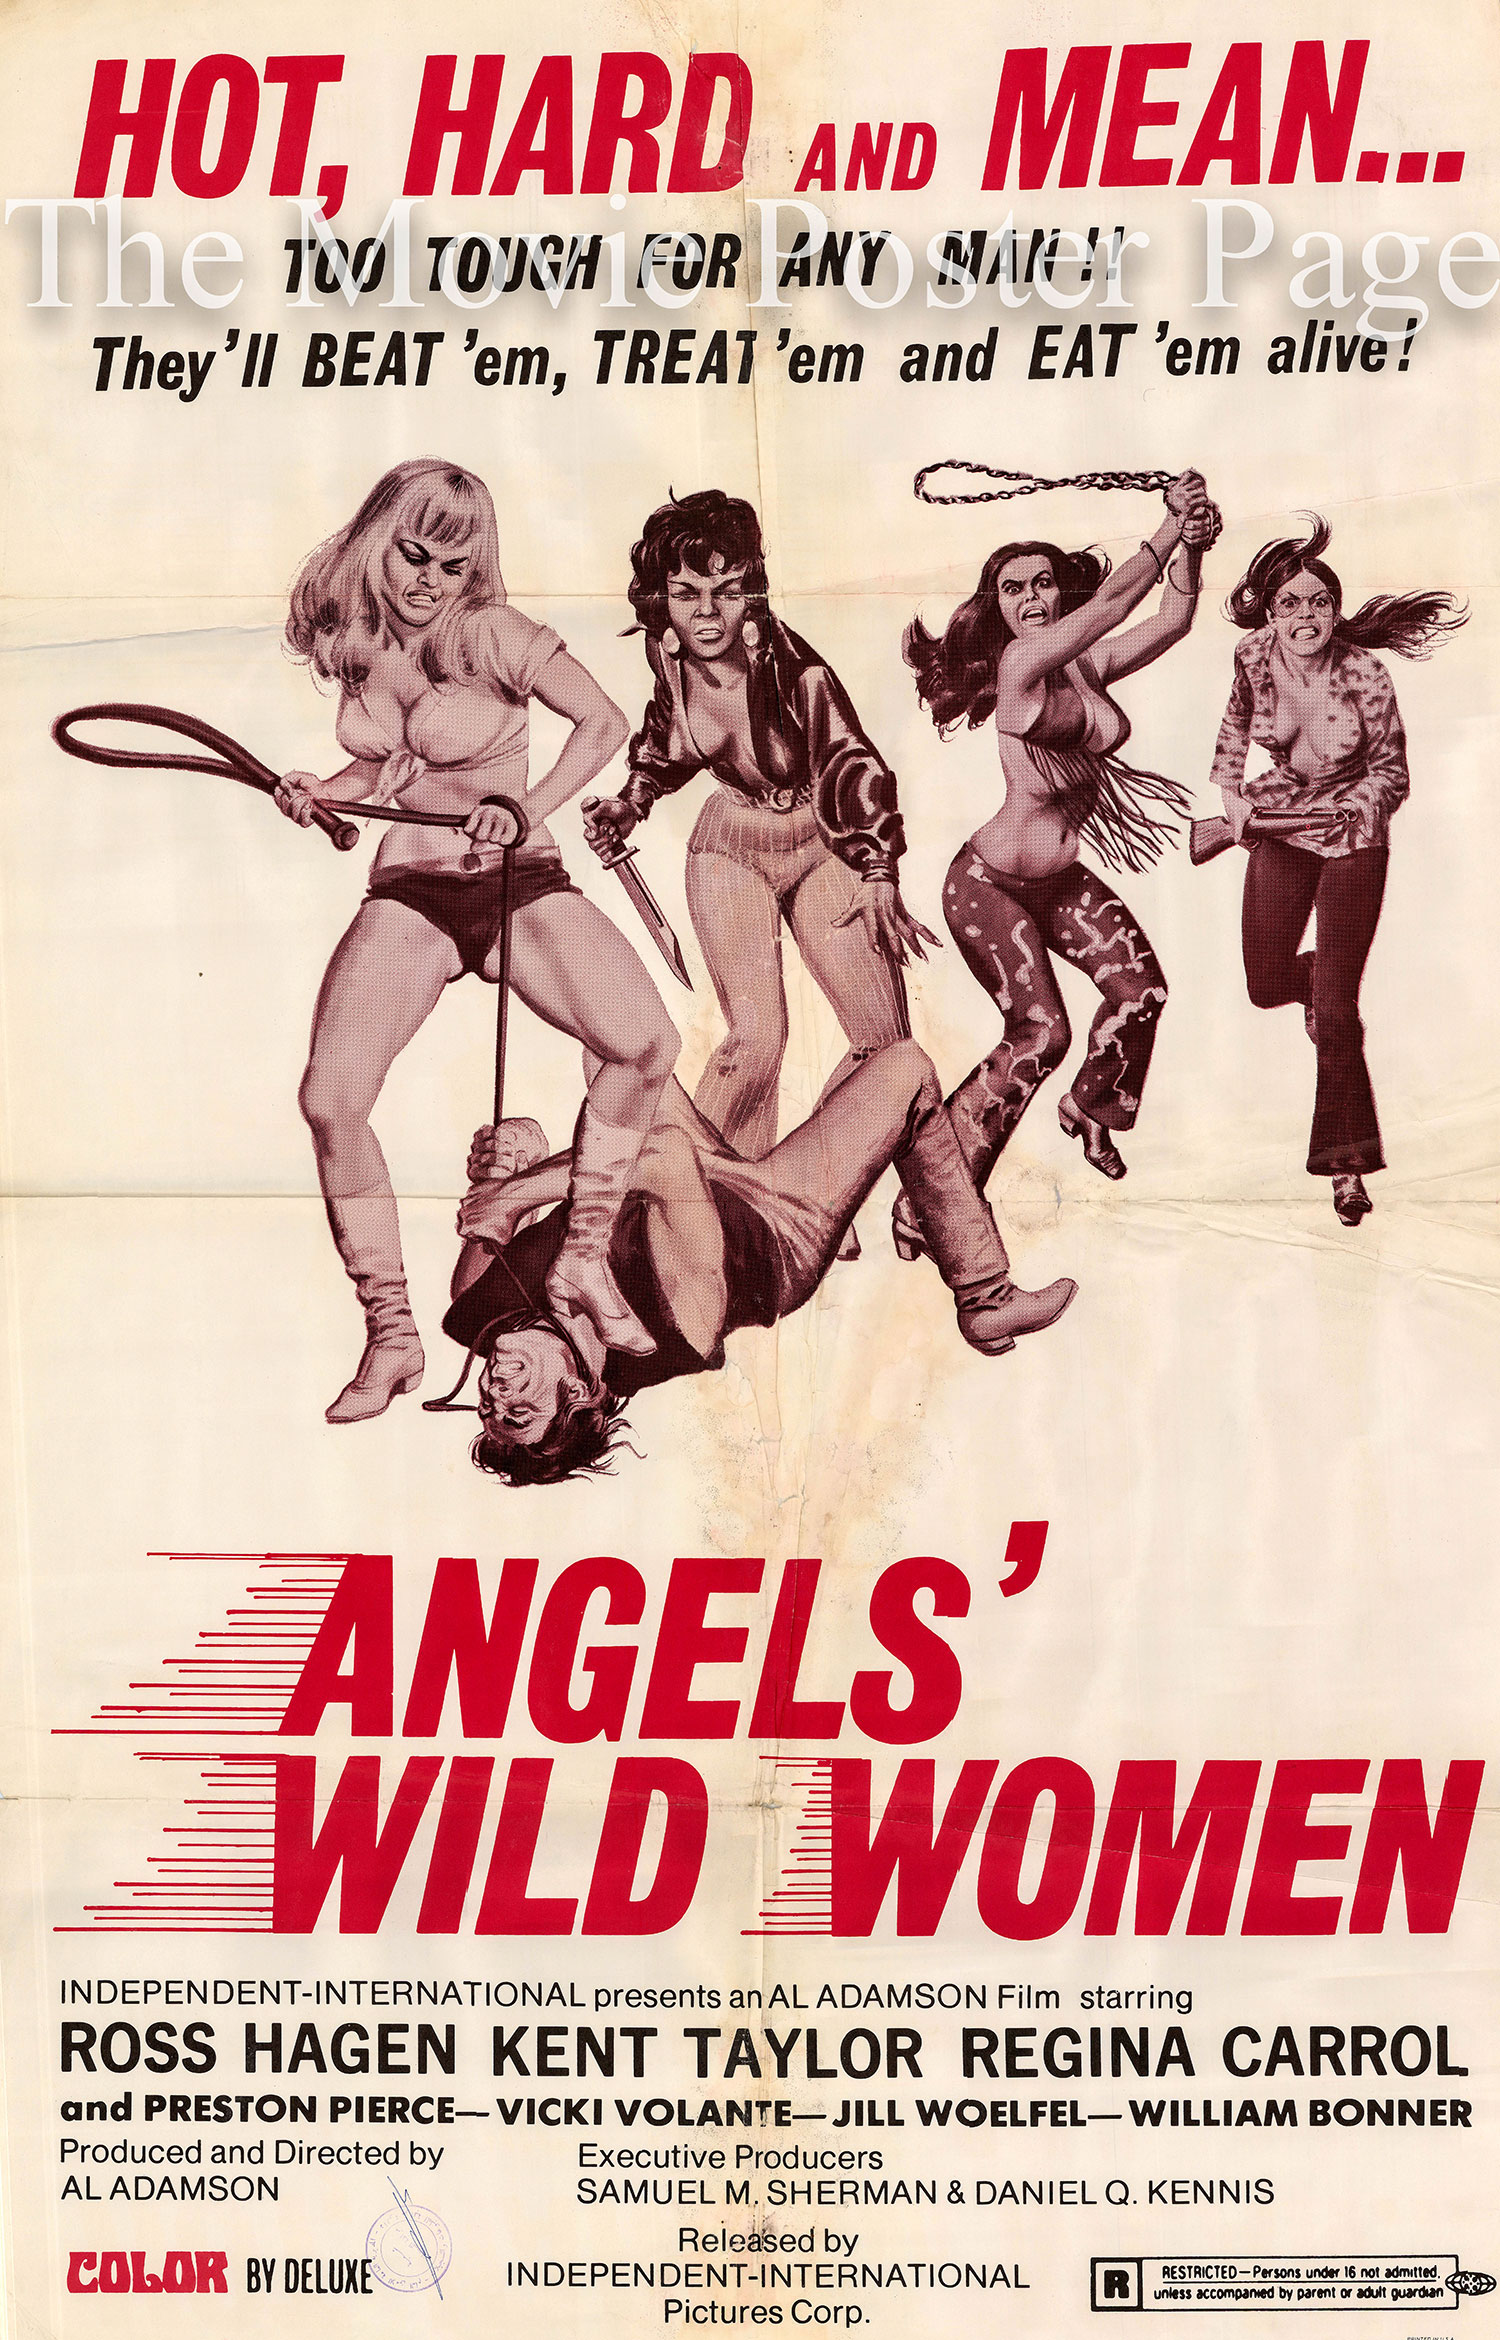 Pictured is a US one-sheet poster for the 1972 Al Adamson film Angel's Wild Women starring Ross Hagen.